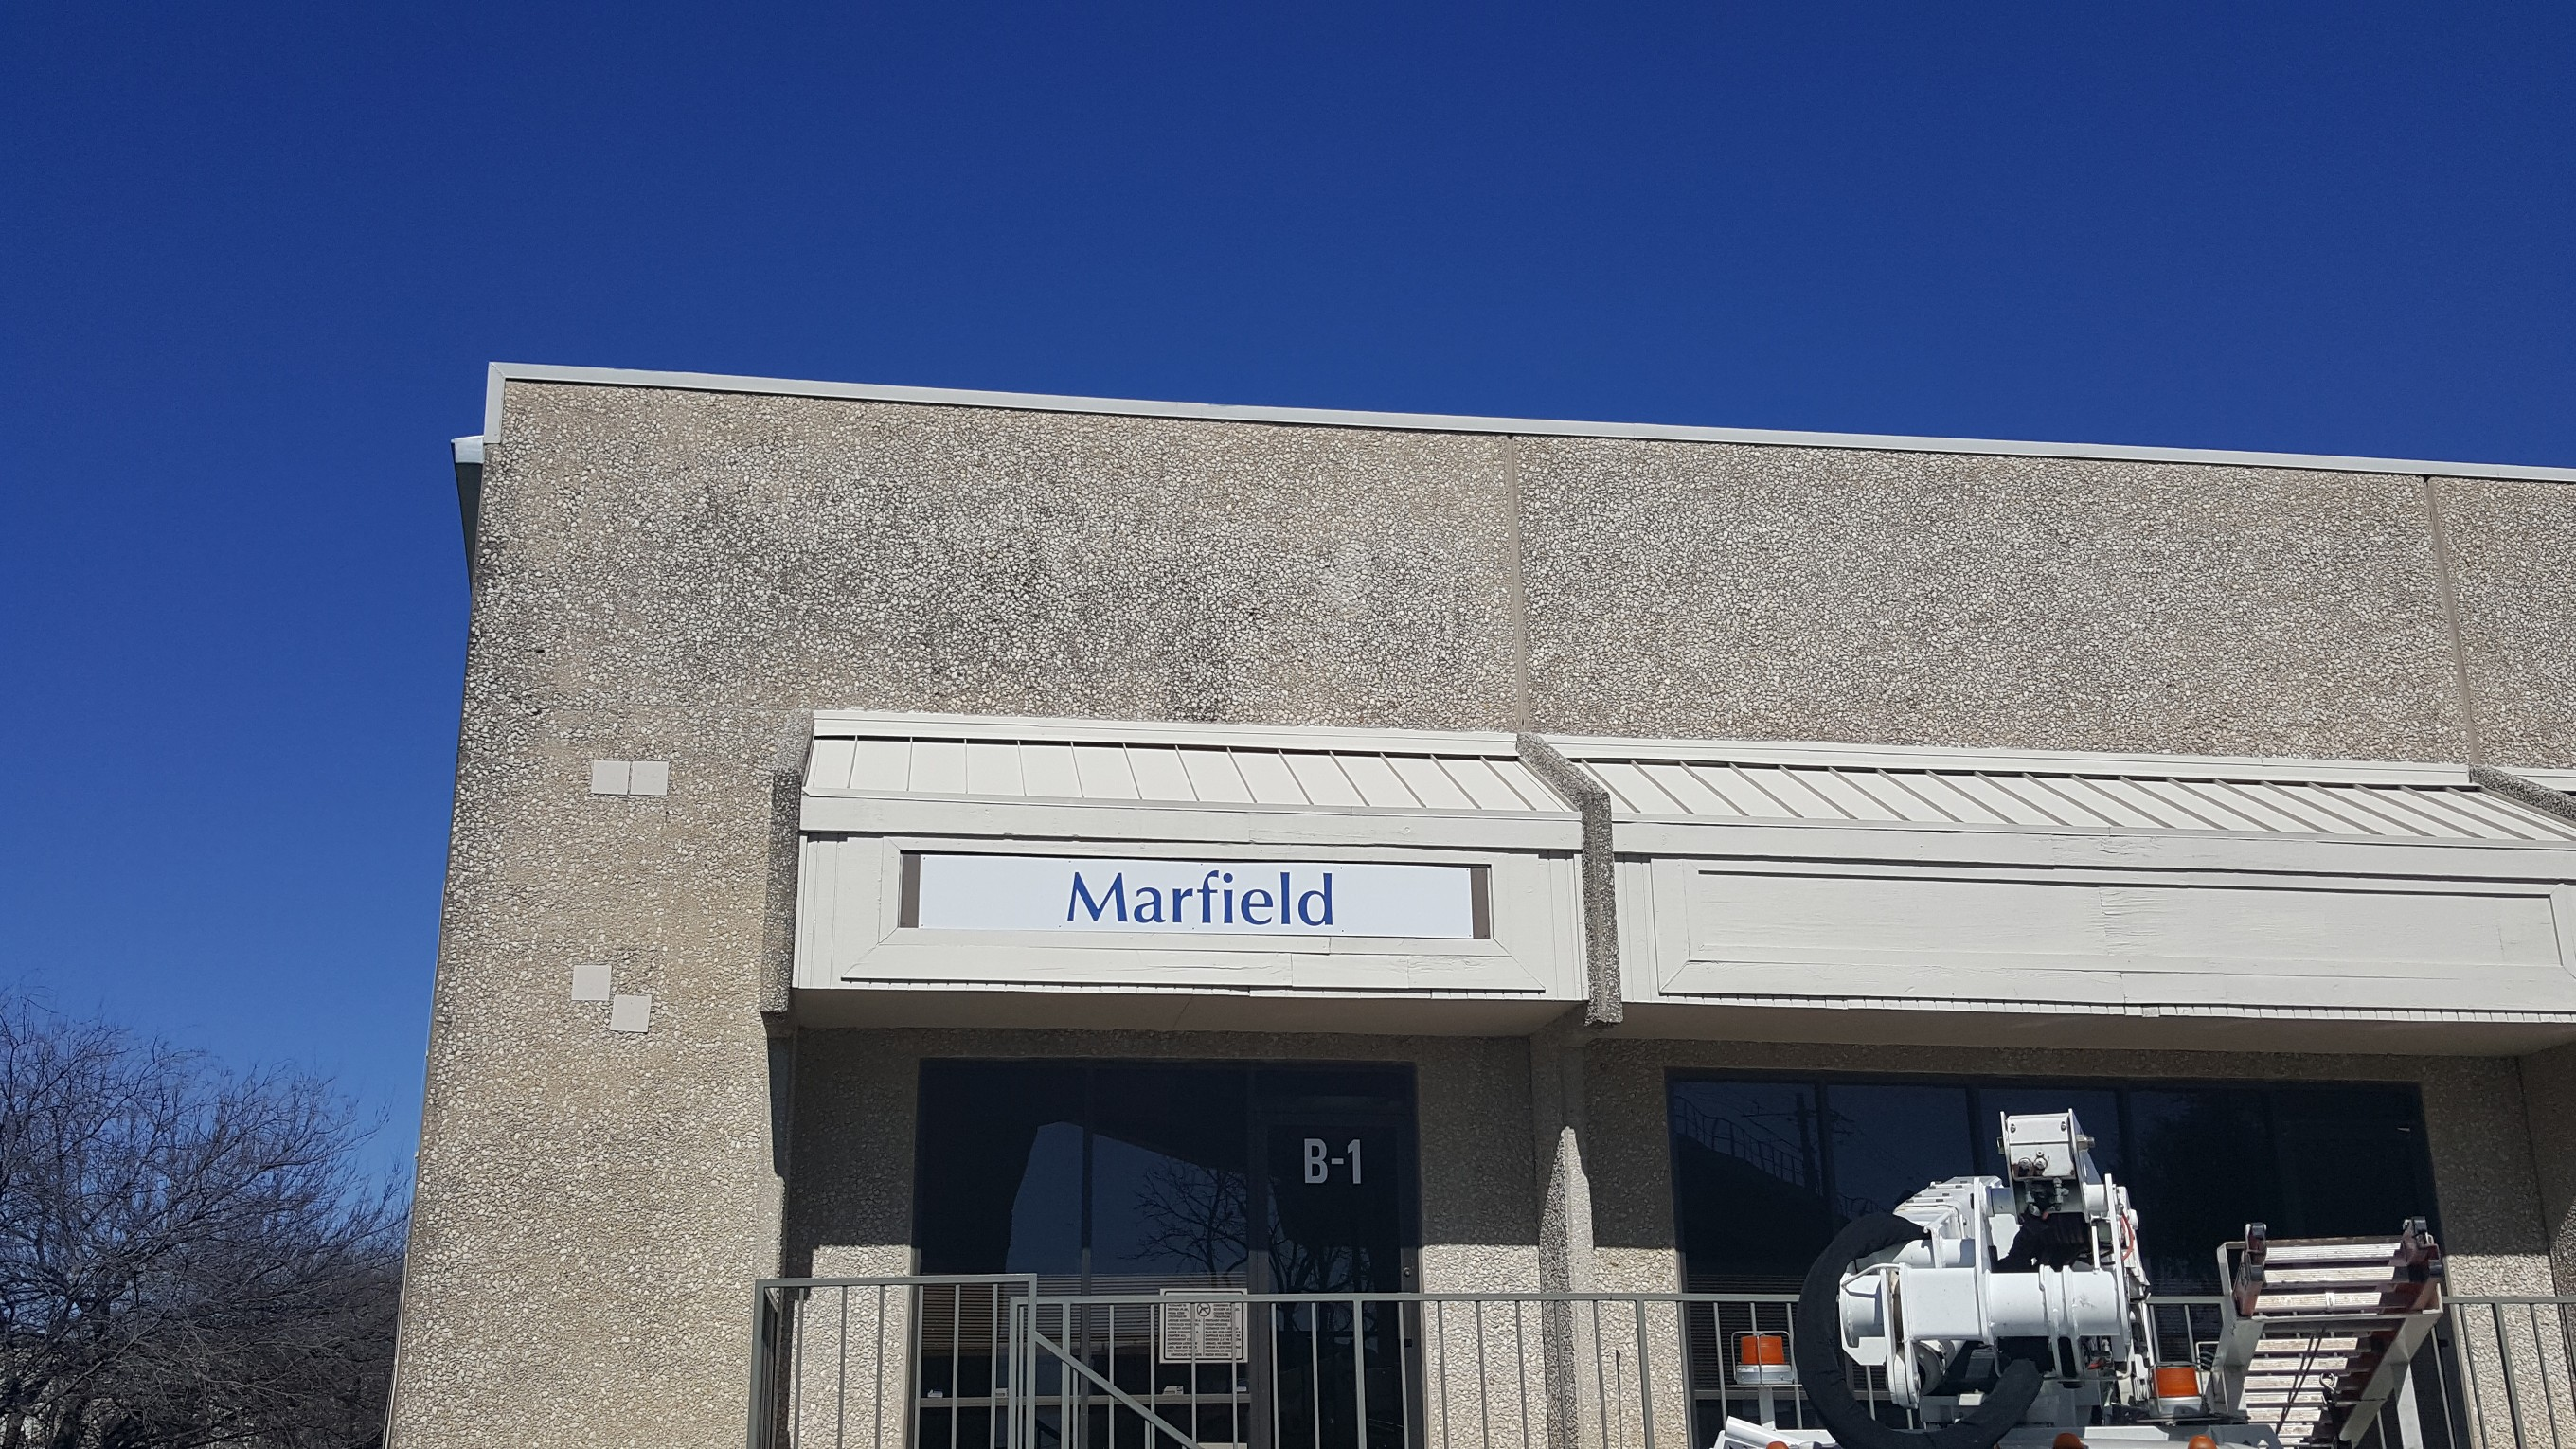 Sign Repair in Carrollton TX